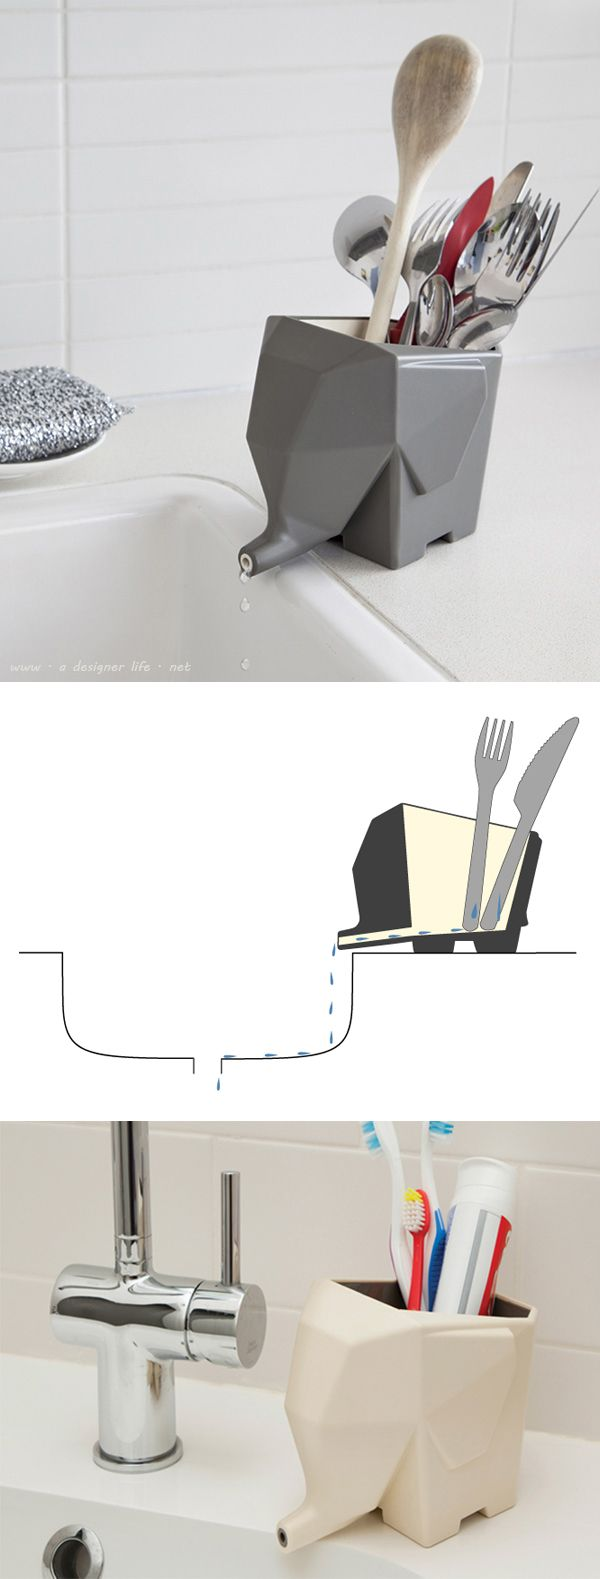 Elephant cutlery and toothbrush holder that drains into the sink. Cool!!